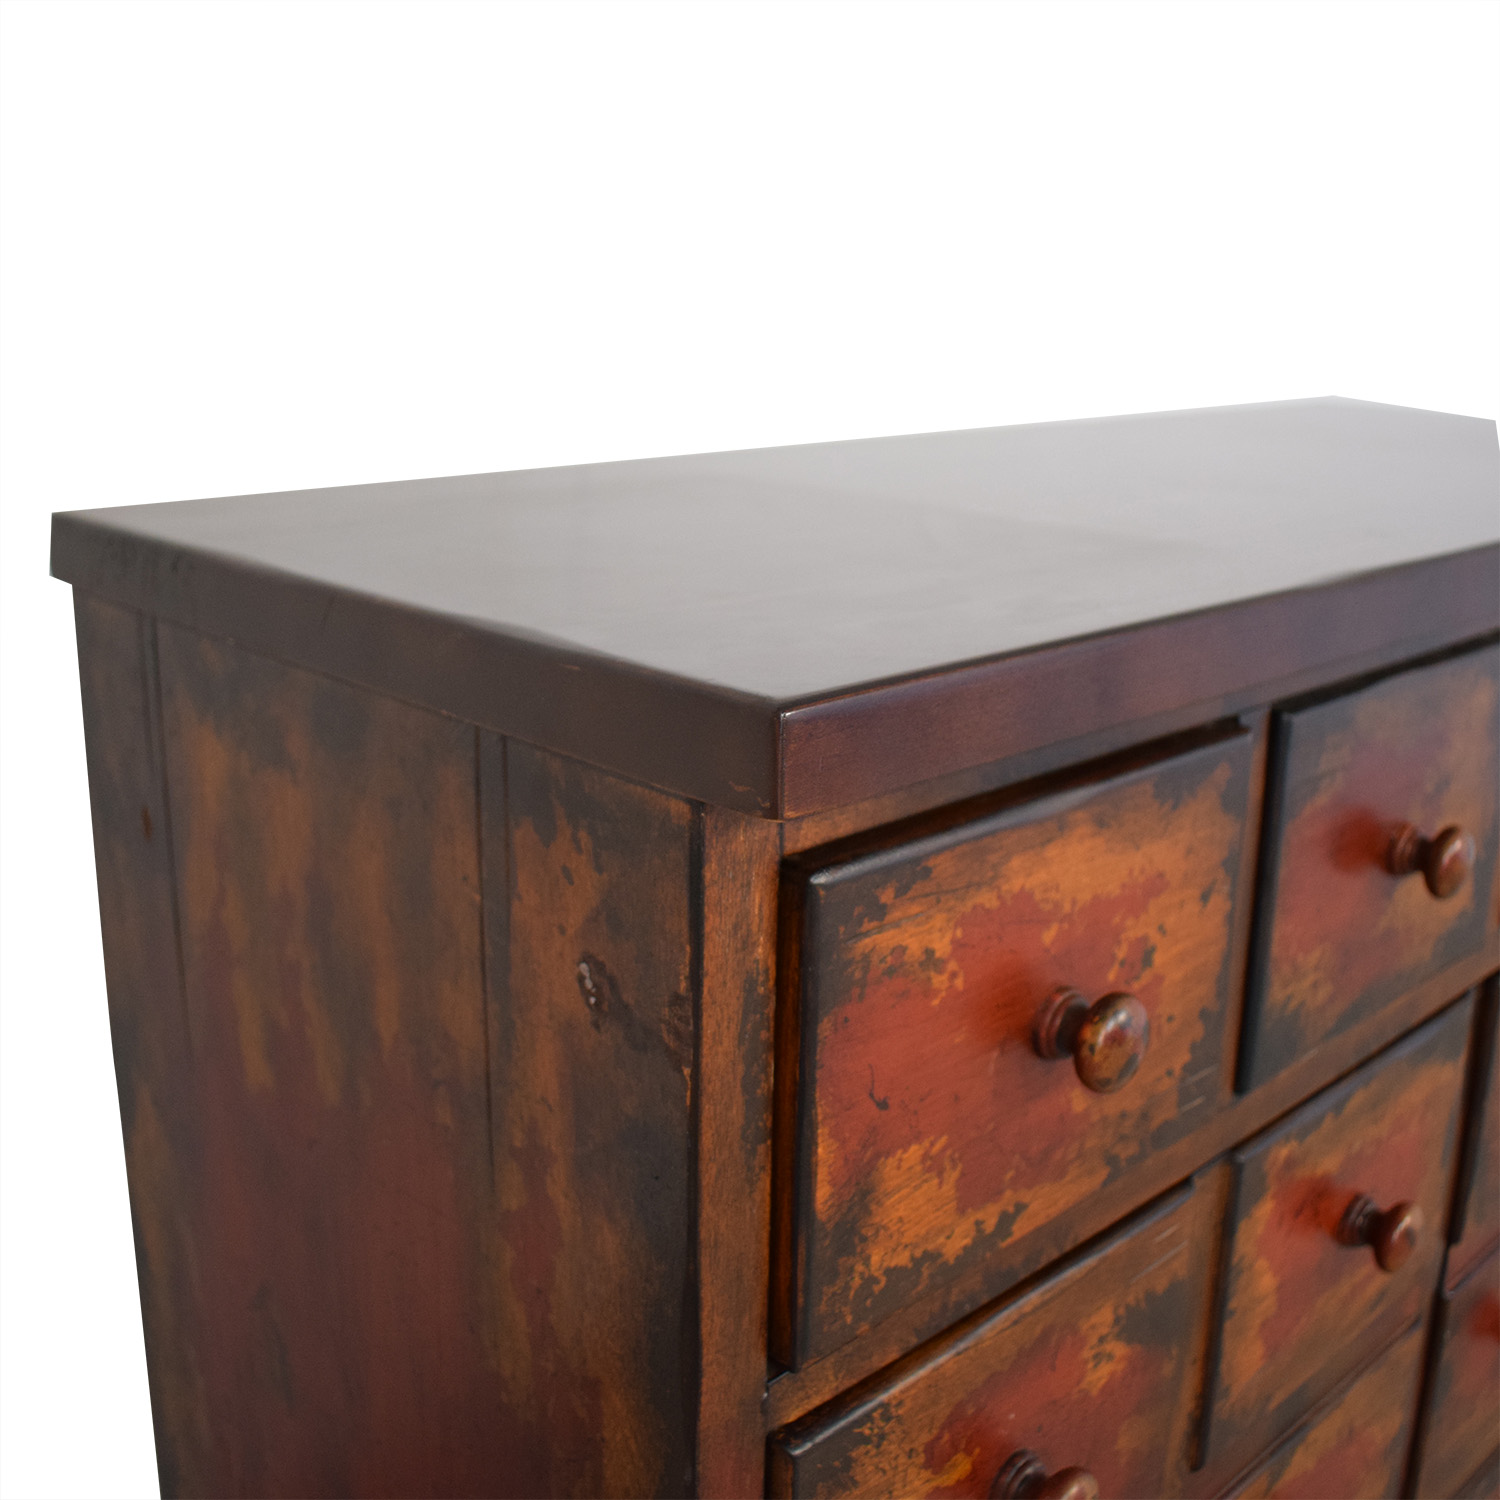 shop Pottery Barn Pottery Barn Andover Cabinet online